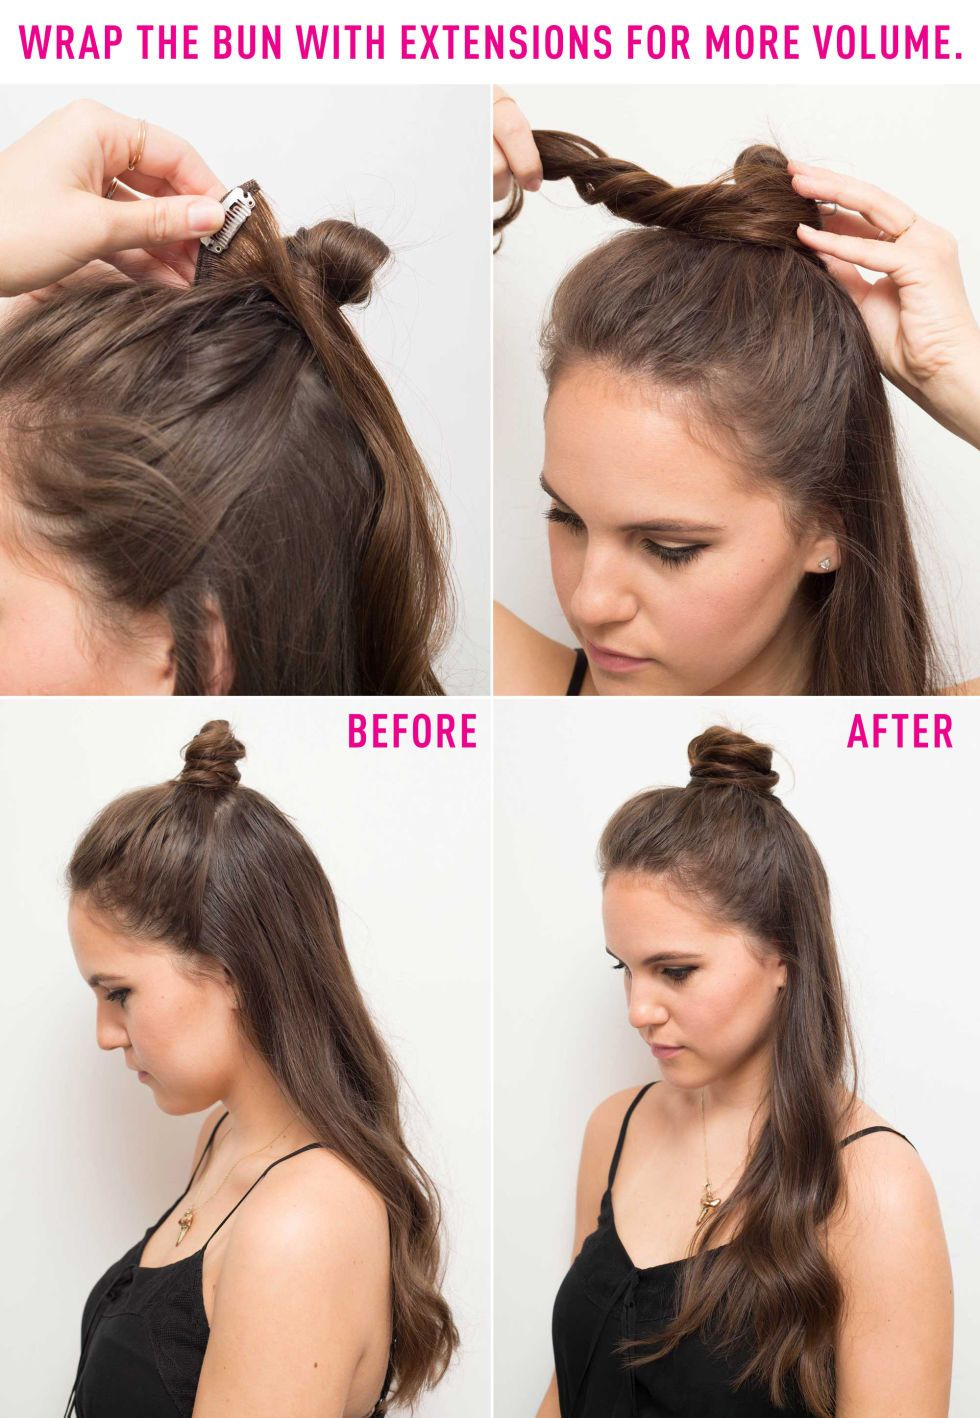 Practical Hairstyles For Moms The Sock Bun Is Dead Here Are 16 Ways To Style The Look You